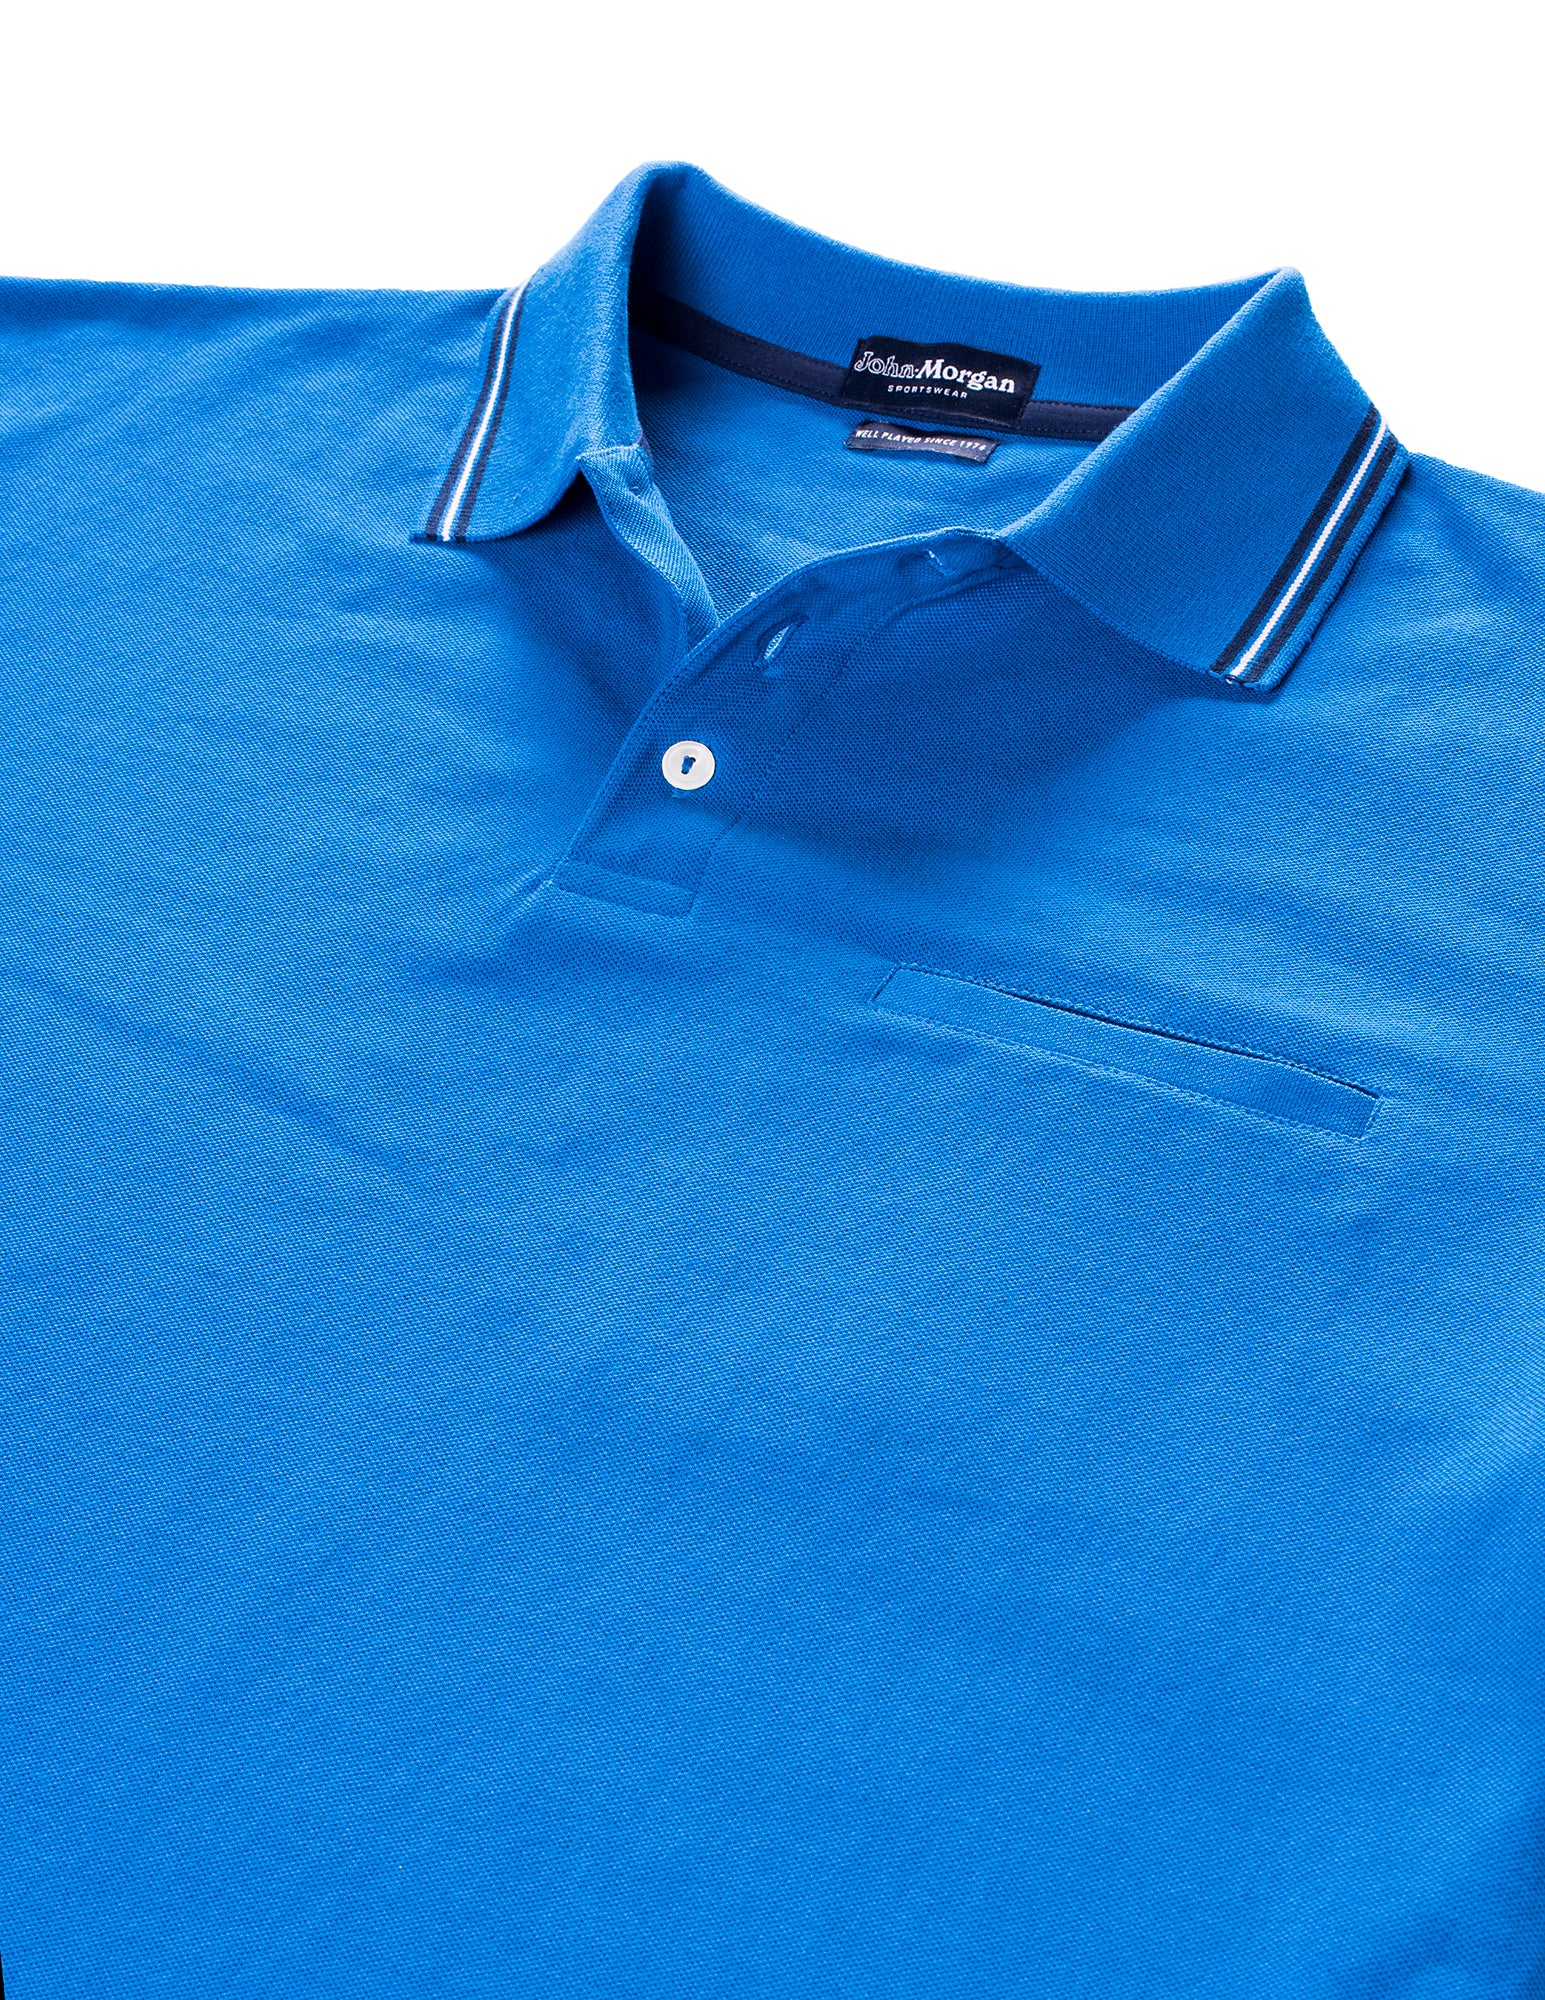 Vintage Match Play Polo - Royal Blue